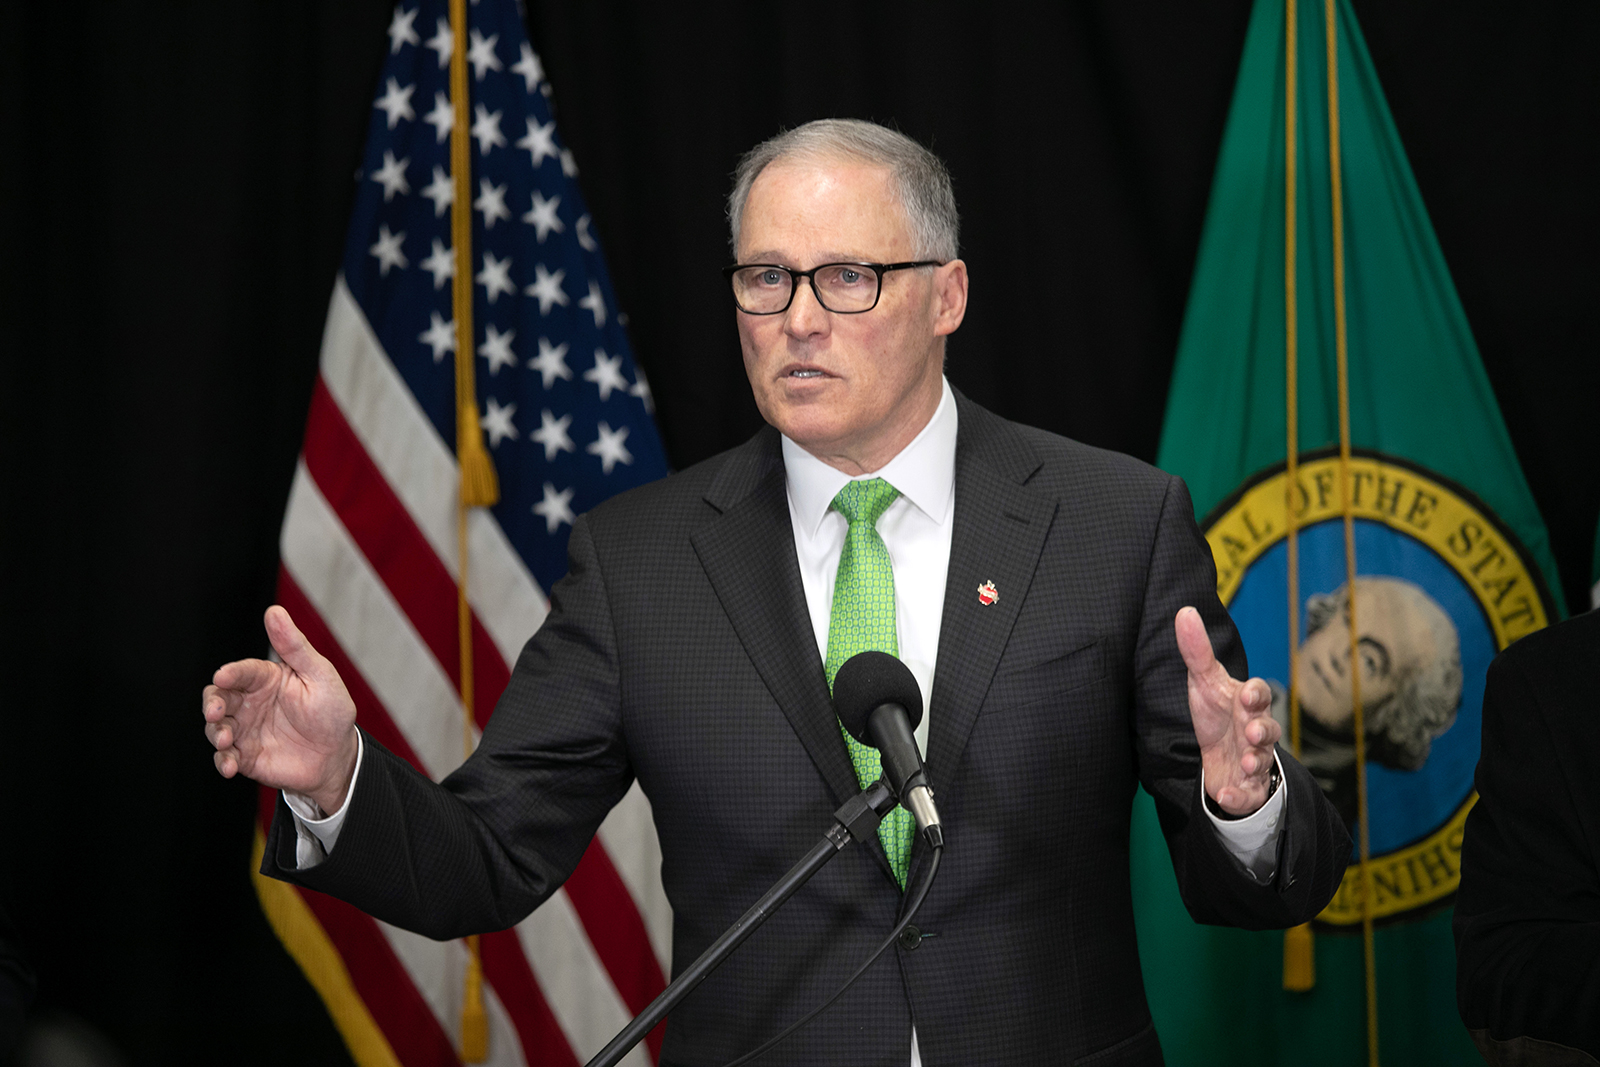 Gov. Jay Inslee at a press conference in Seattle, Washington on March 11.